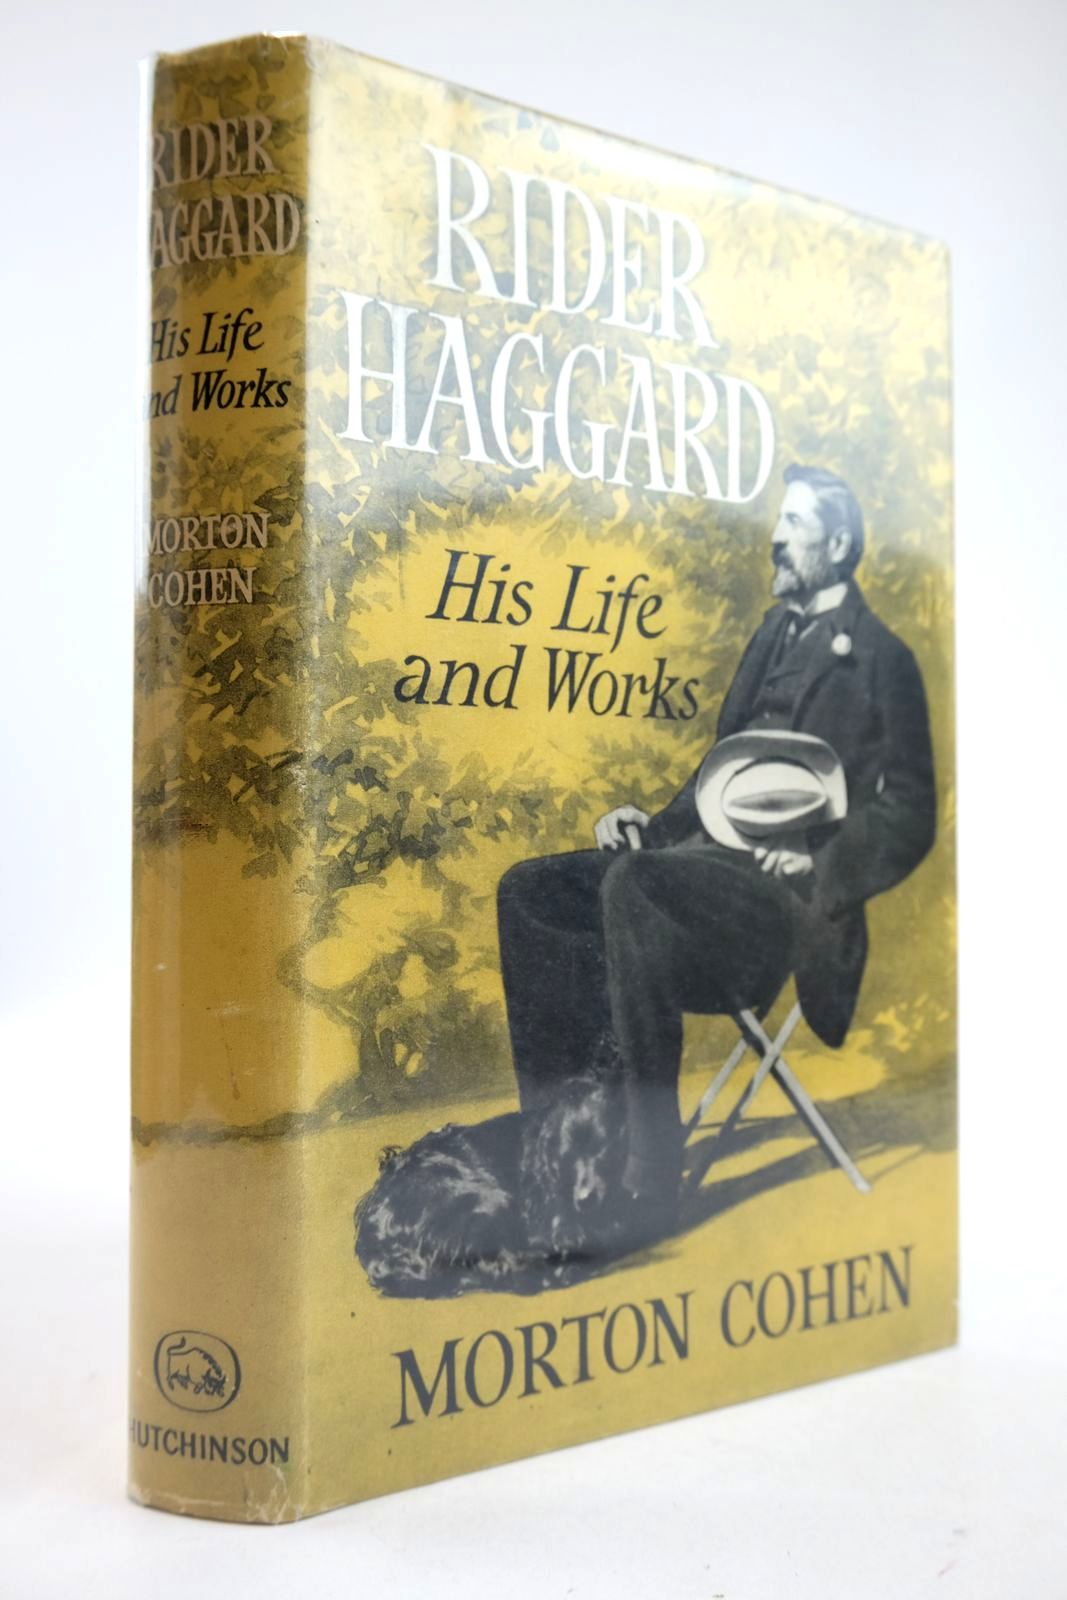 Photo of RIDER HAGGARD HIS LIFE AND WORKS- Stock Number: 2133301